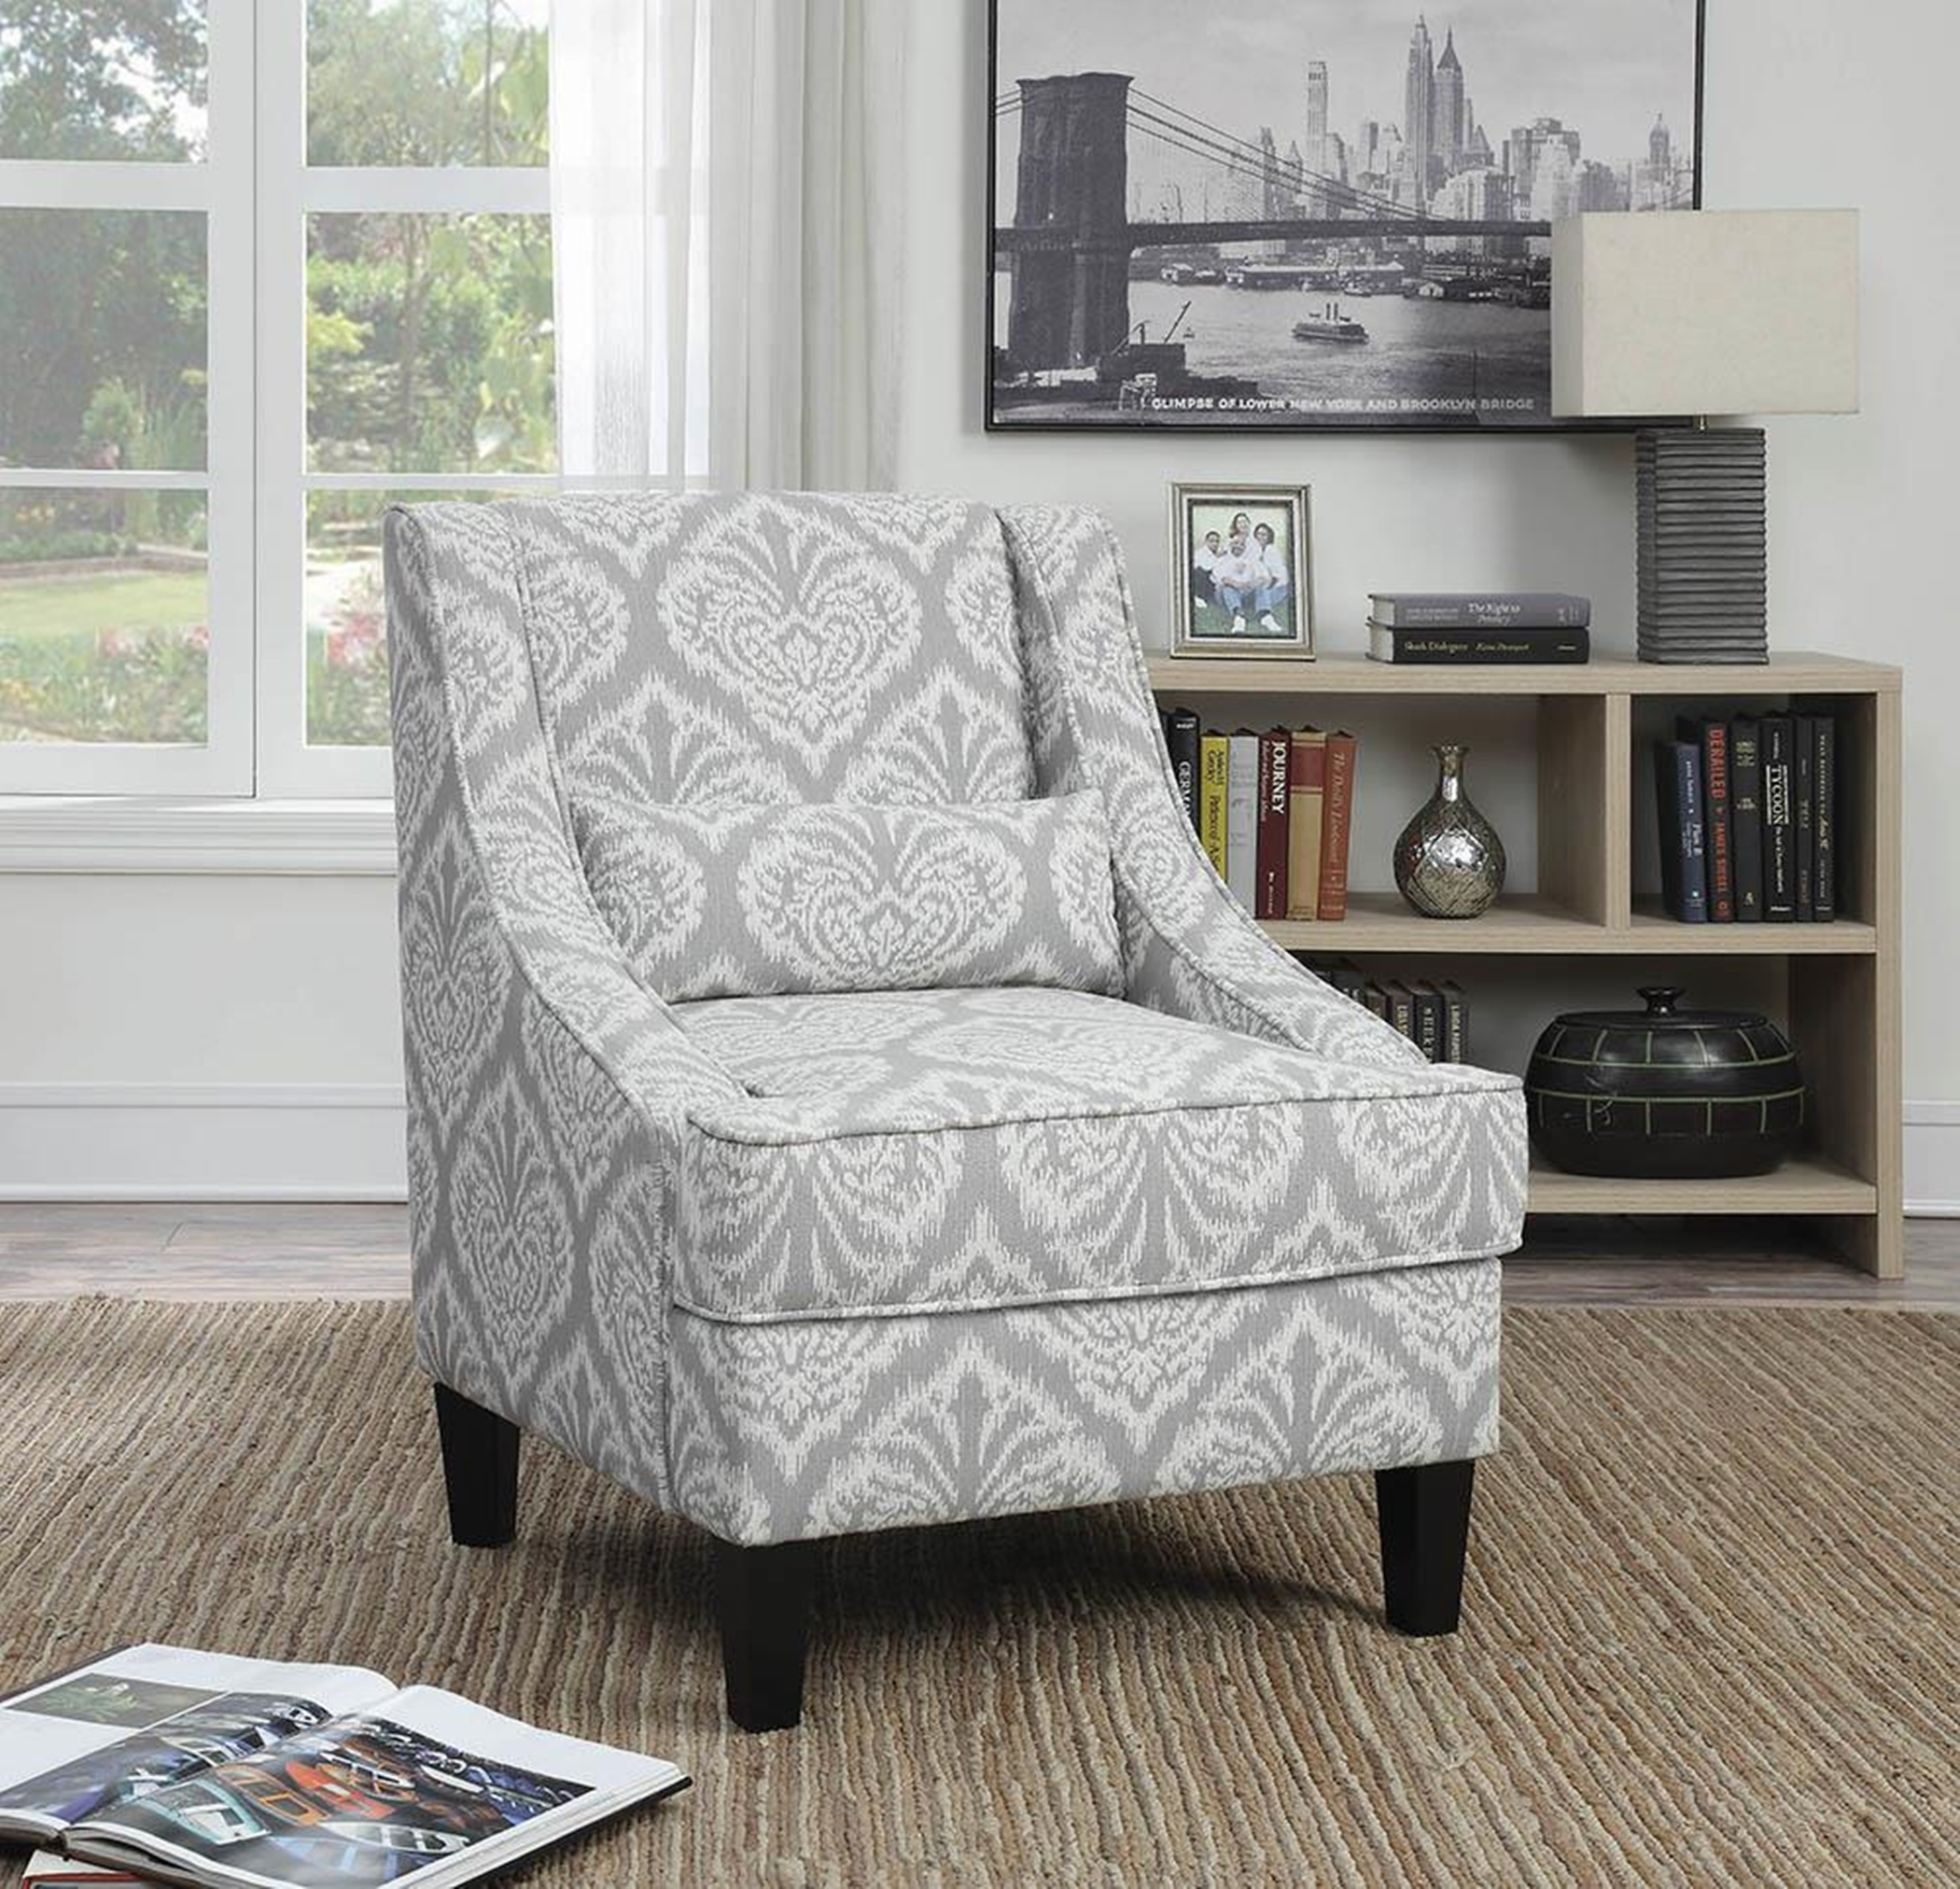 Light Grey and White Jacquard Accent Chair